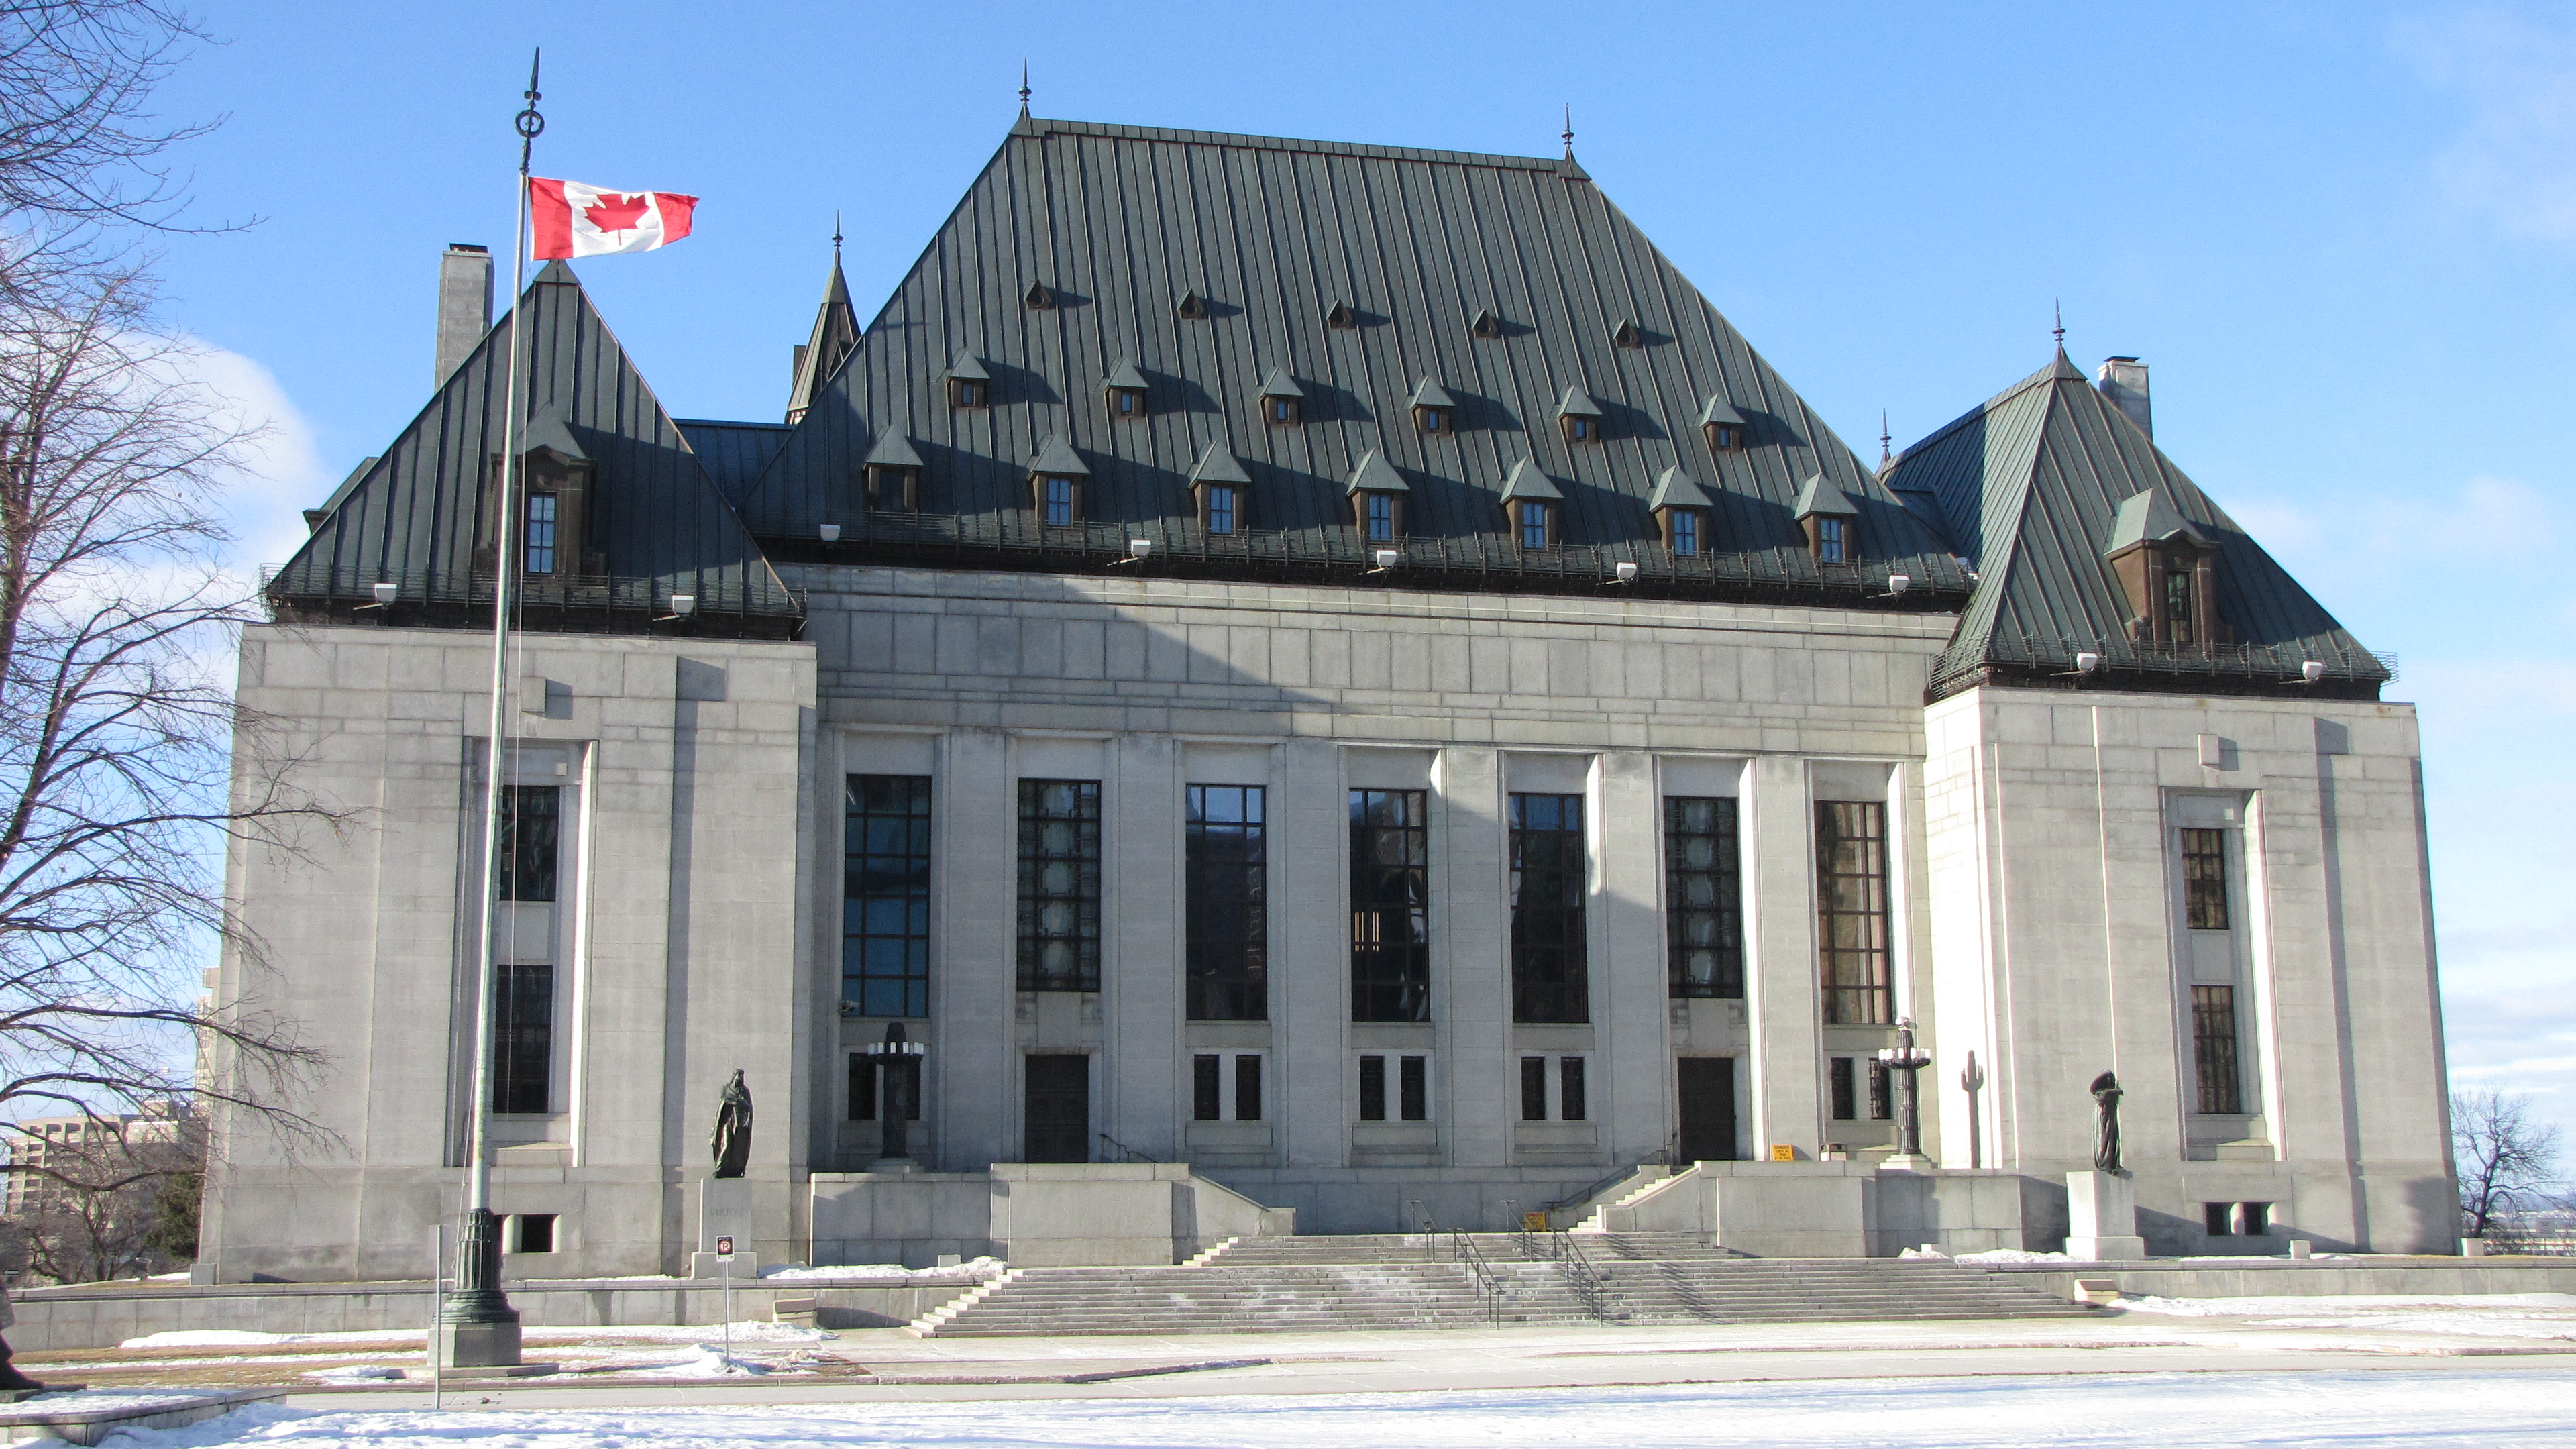 2010 reasons of the Supreme Court of Canada 3840x2160